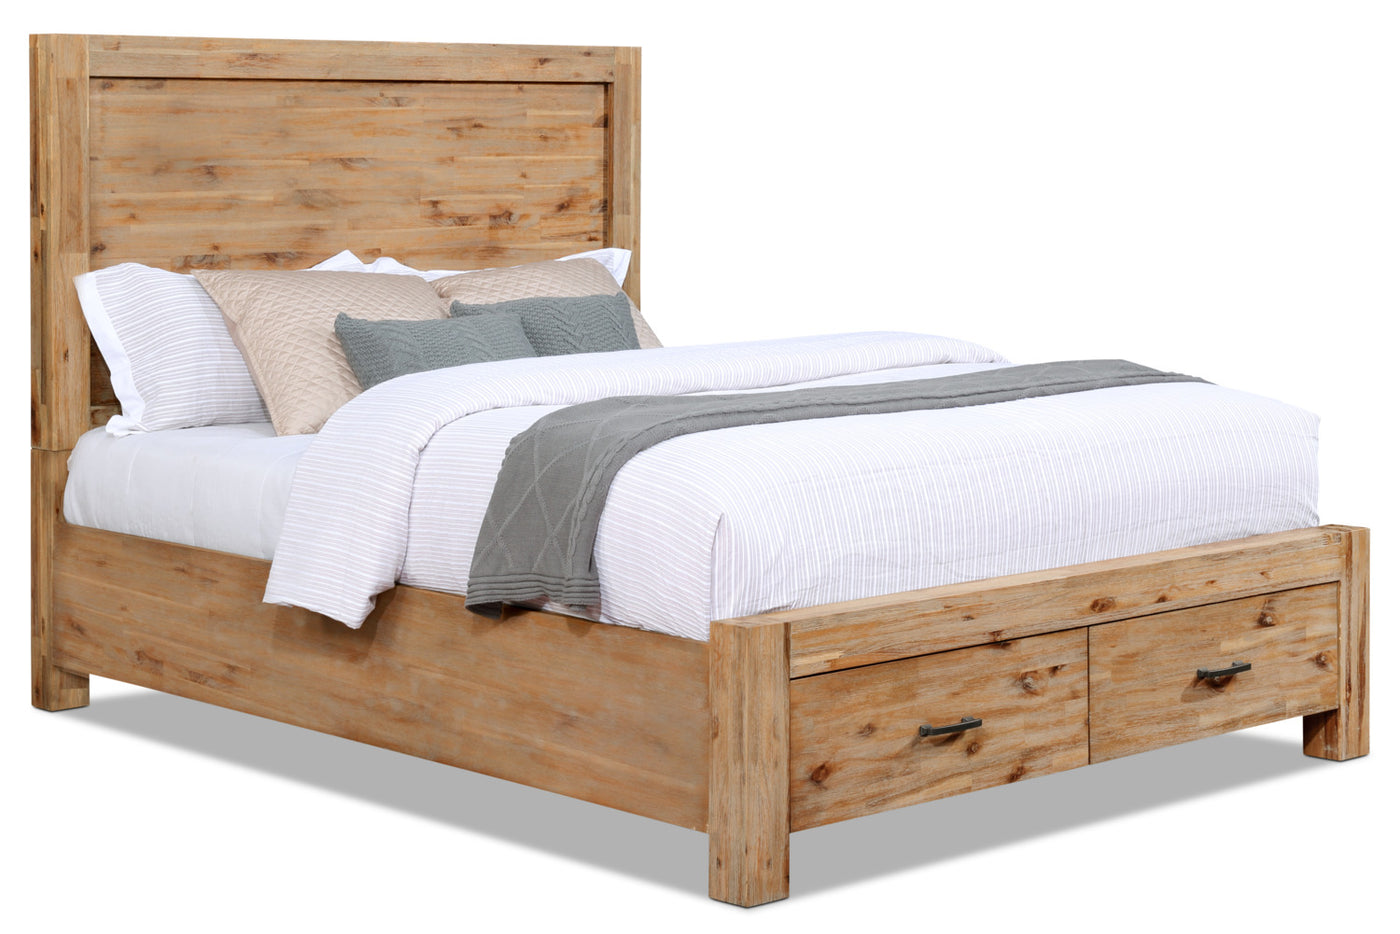 Acadia Queen Storage Bed | The Brick